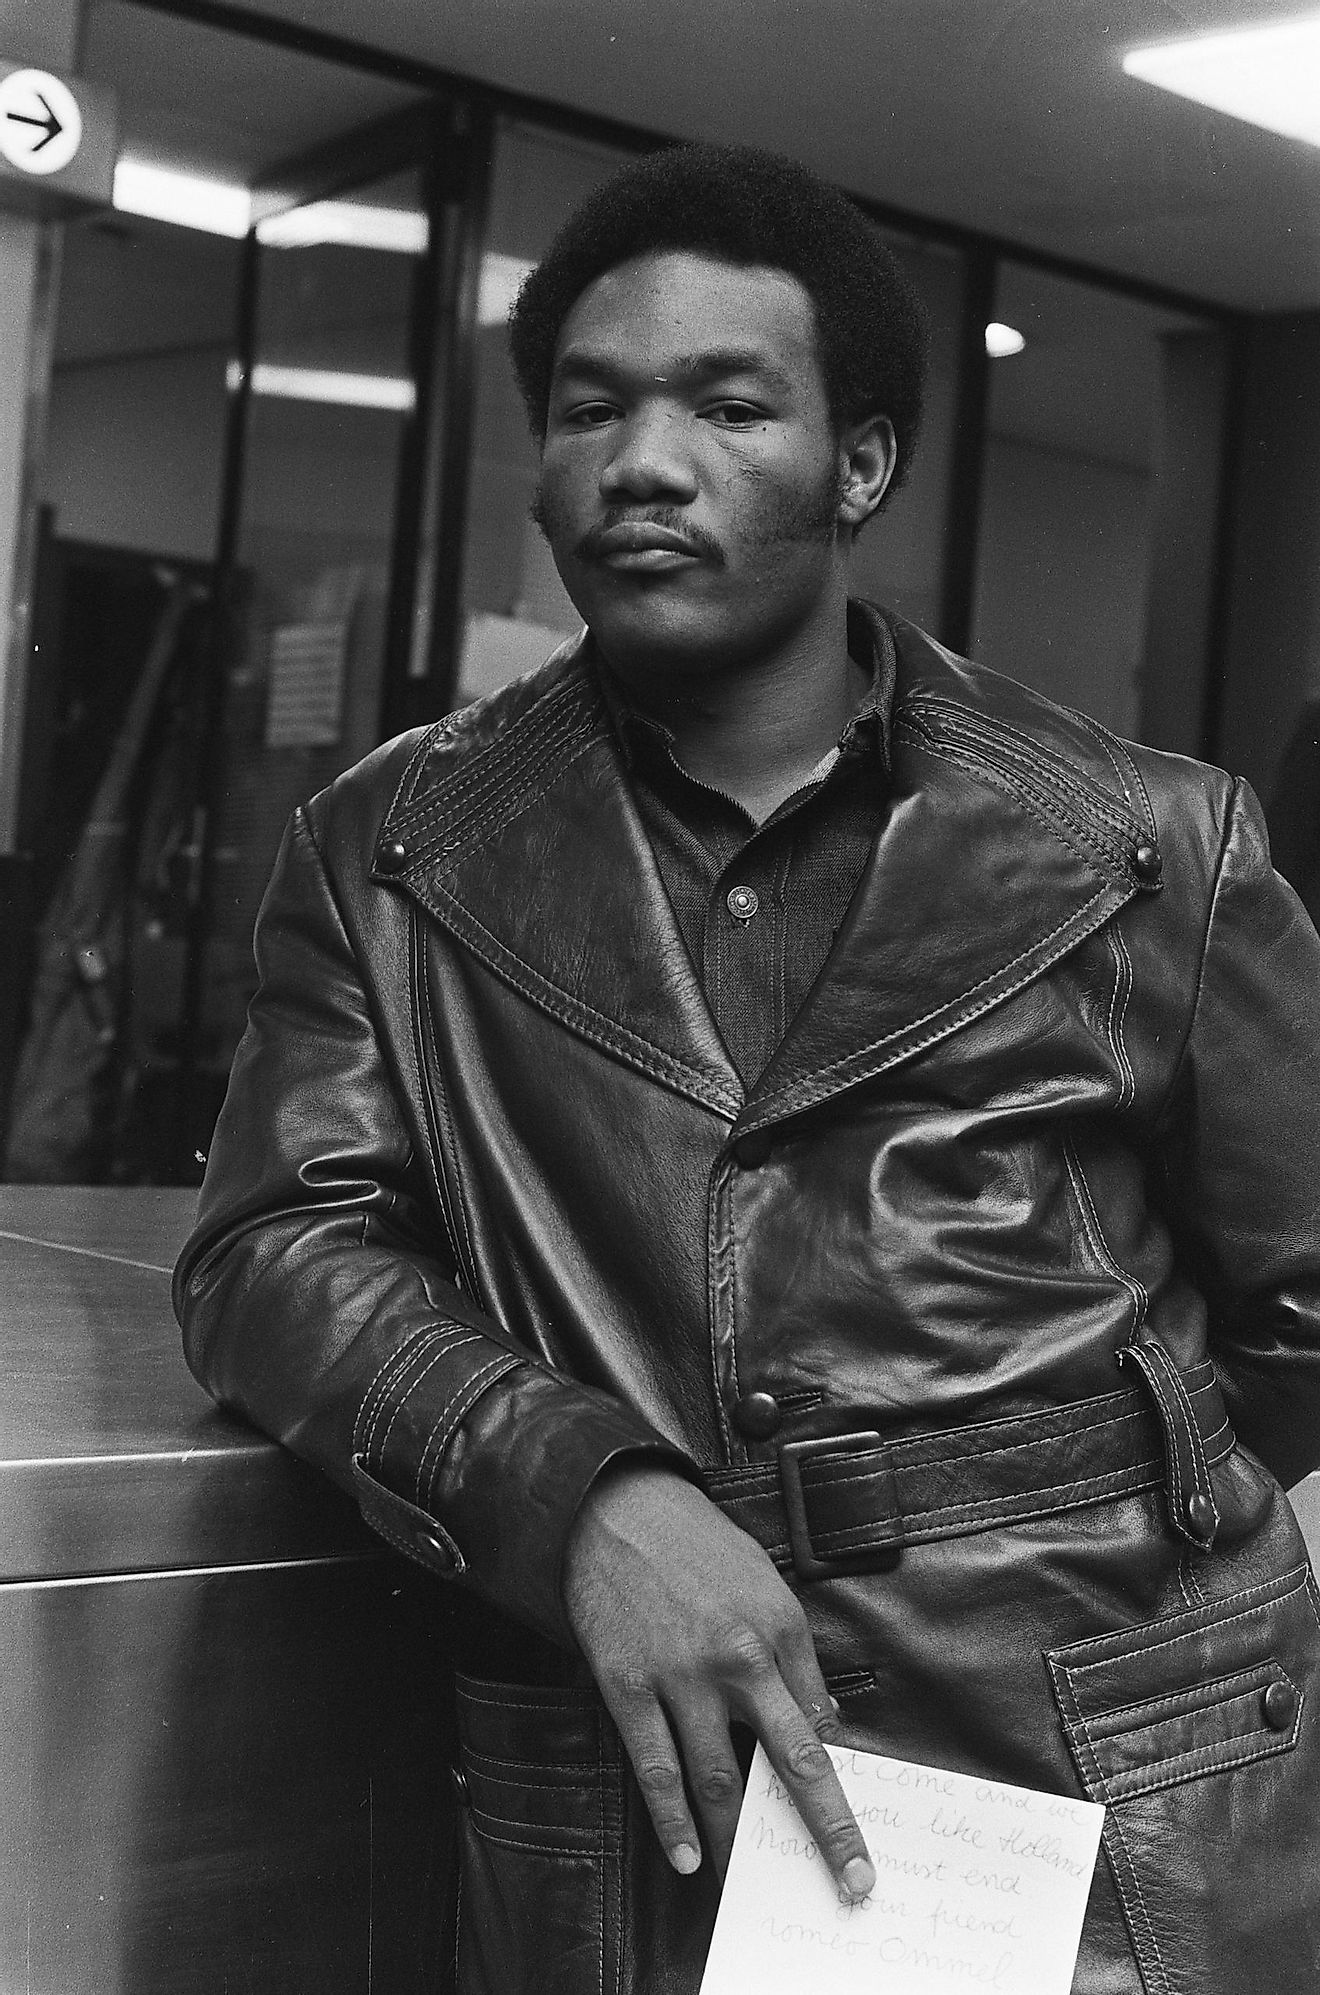 Foreman in 1973